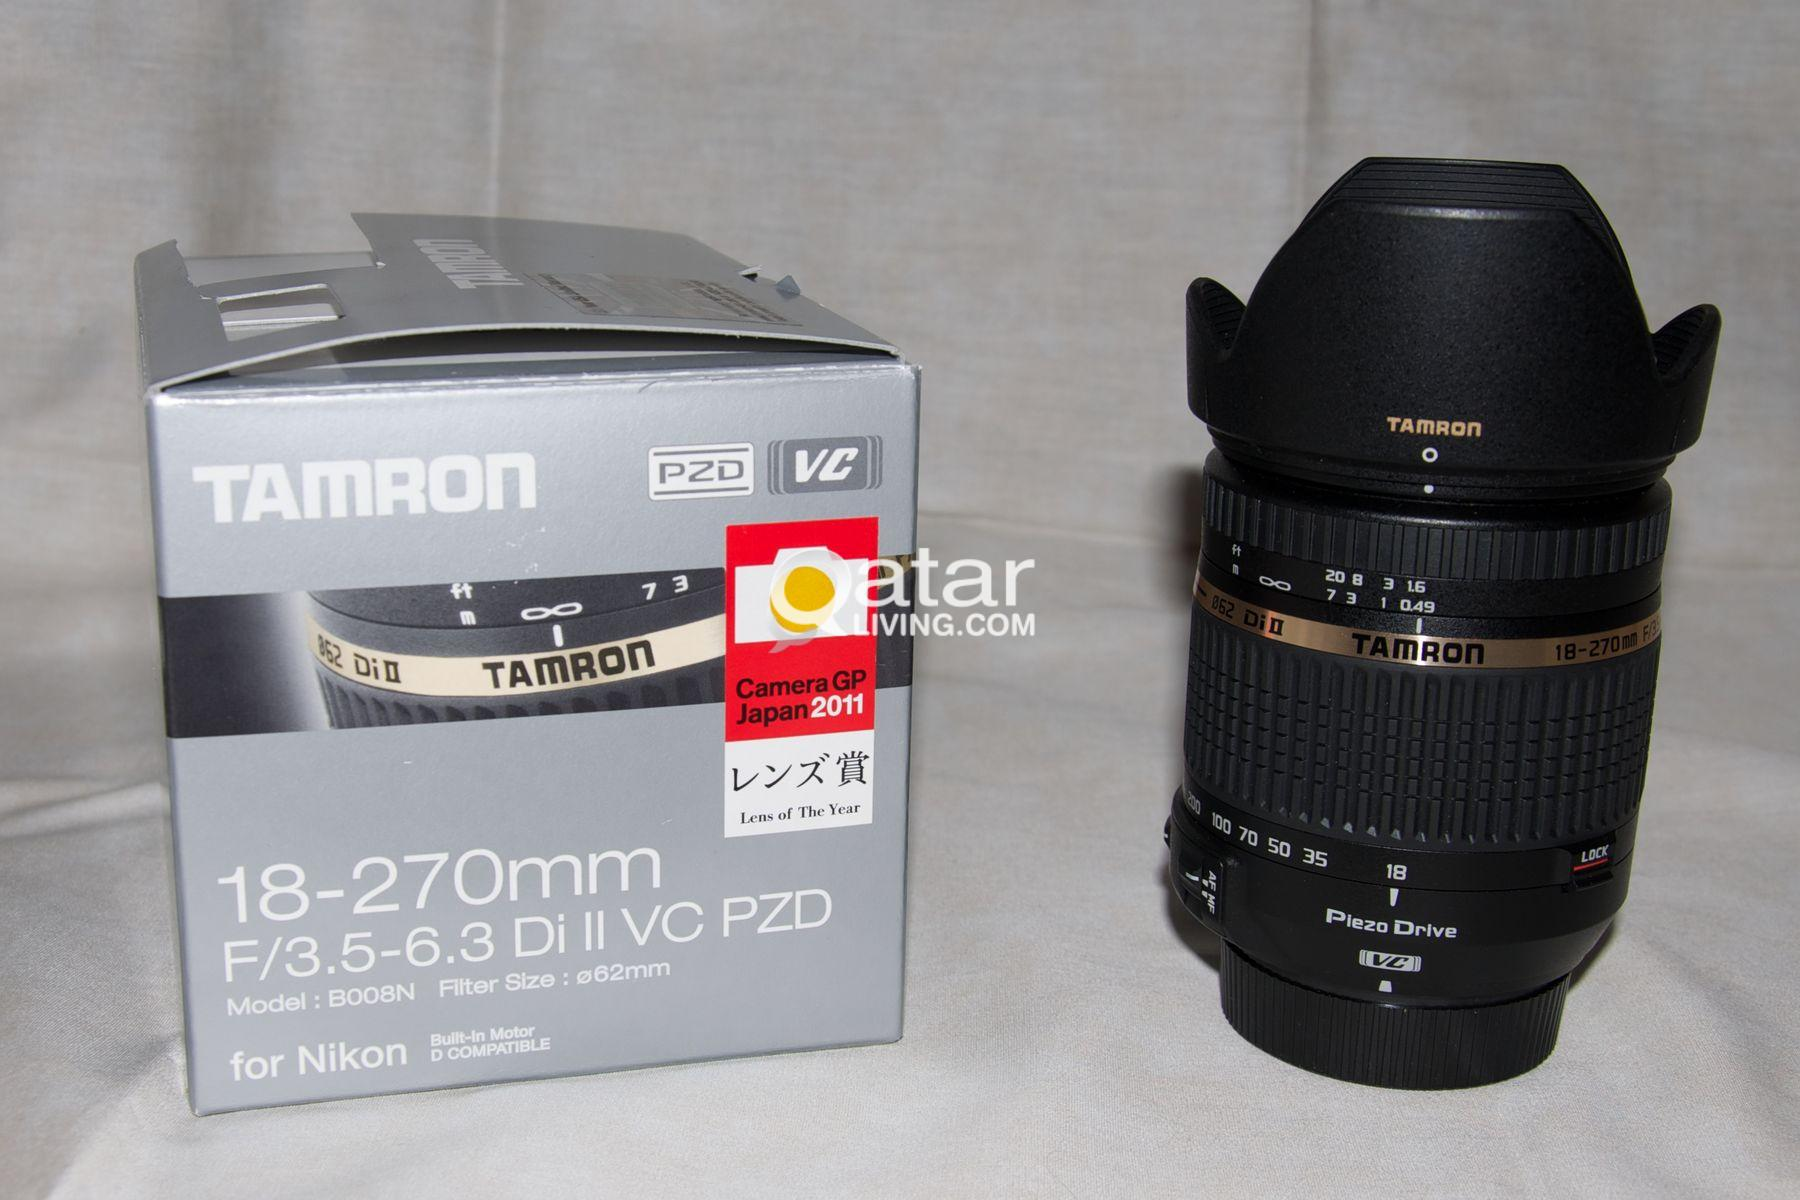 Tamron 18 270mm F 35 63 Di Ii Vc Pzdfor Nikon Dslr Exreme Zoom Af Pzd For Canon Title